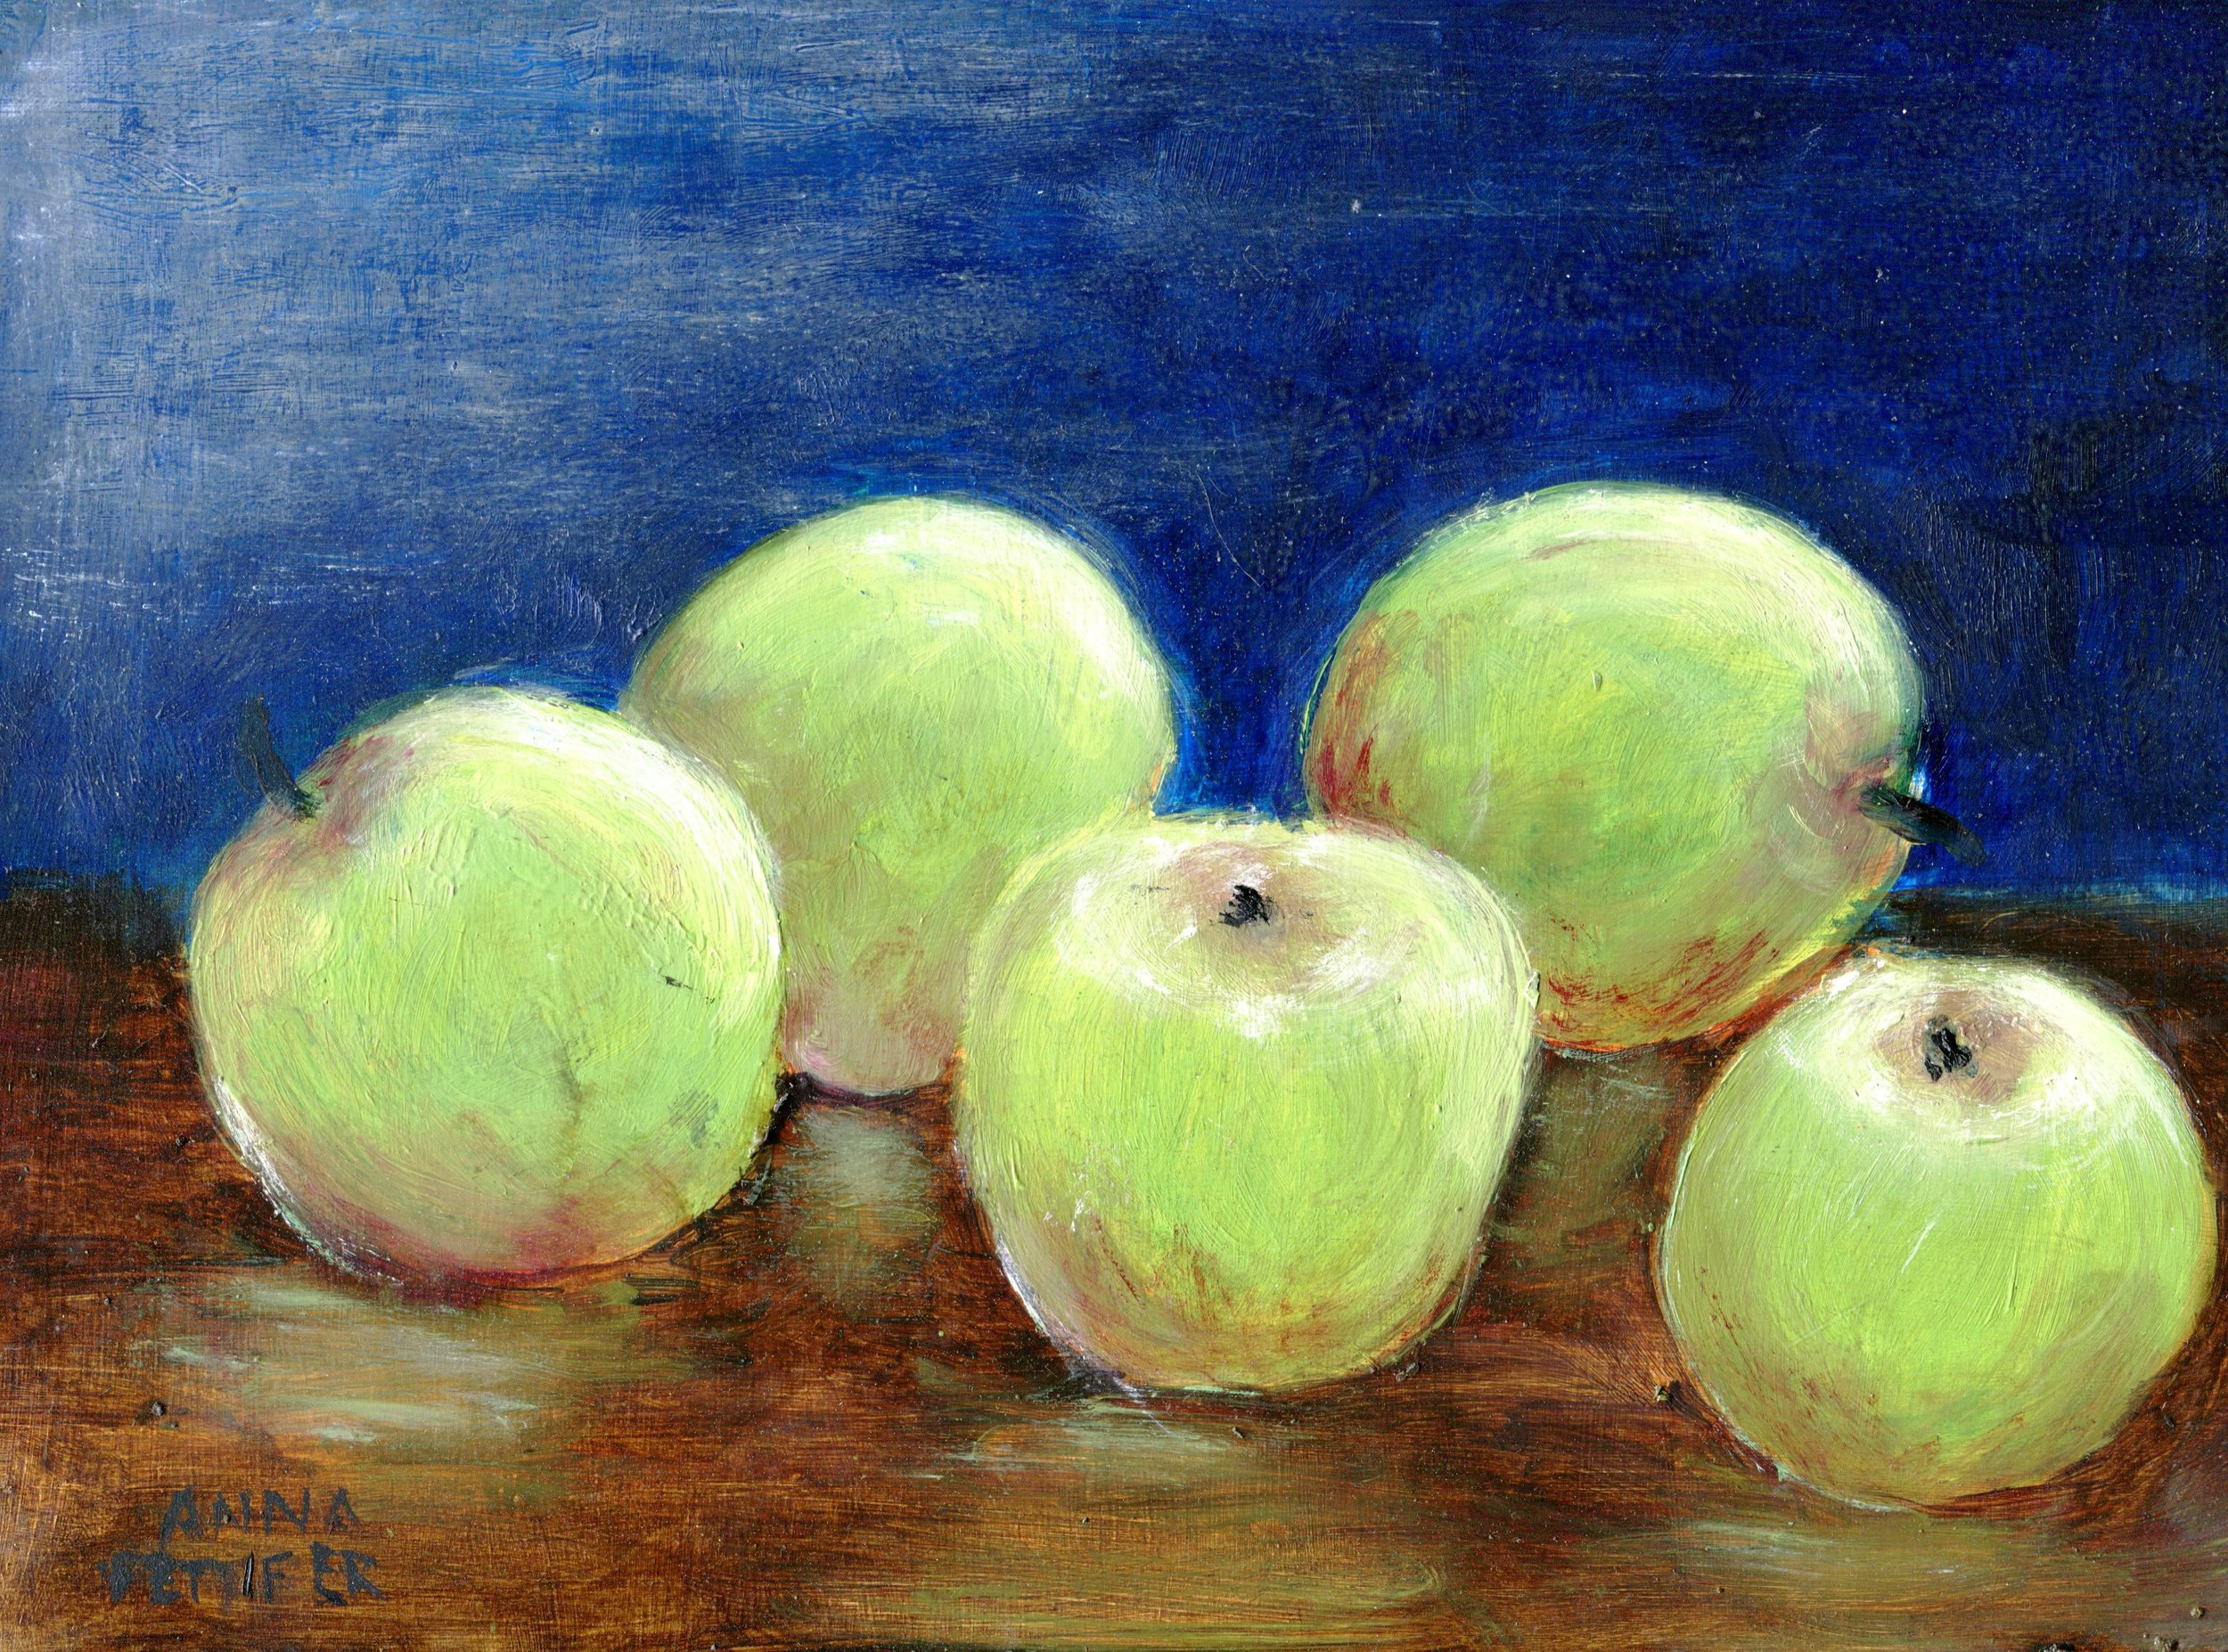 23A ANNA PETTIFER, APPLES, OIL OVER ACRYLIC ON BOARD